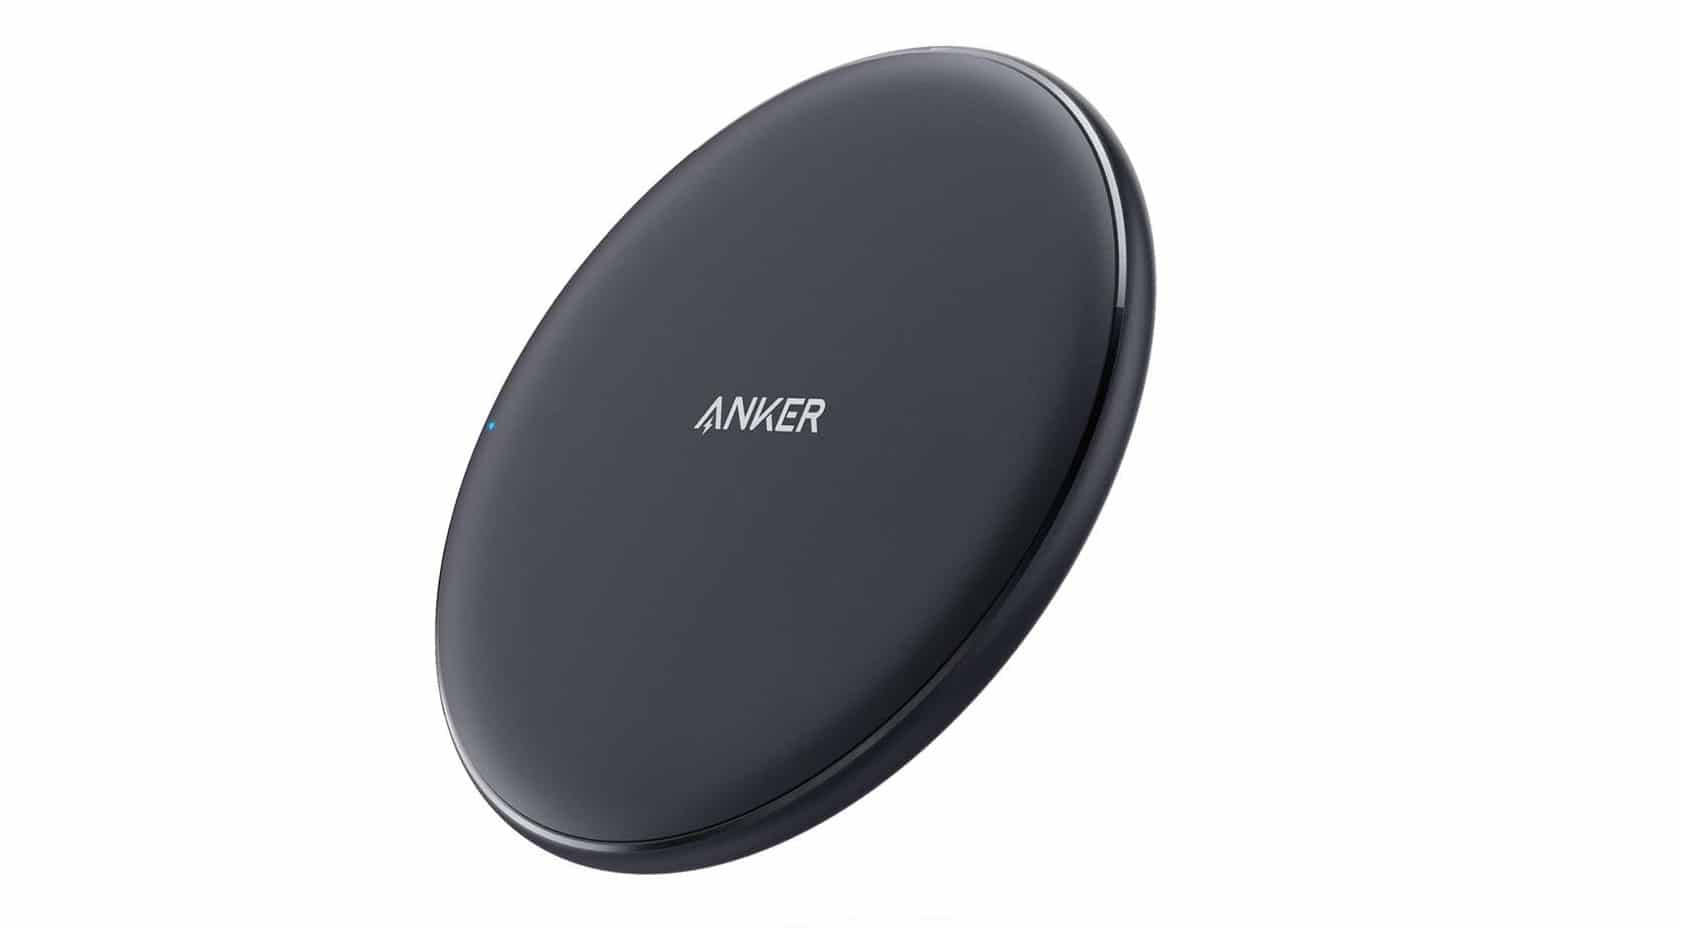 Anker 10W Wireless Charger, Qi-Certified Wireless Charging Pad